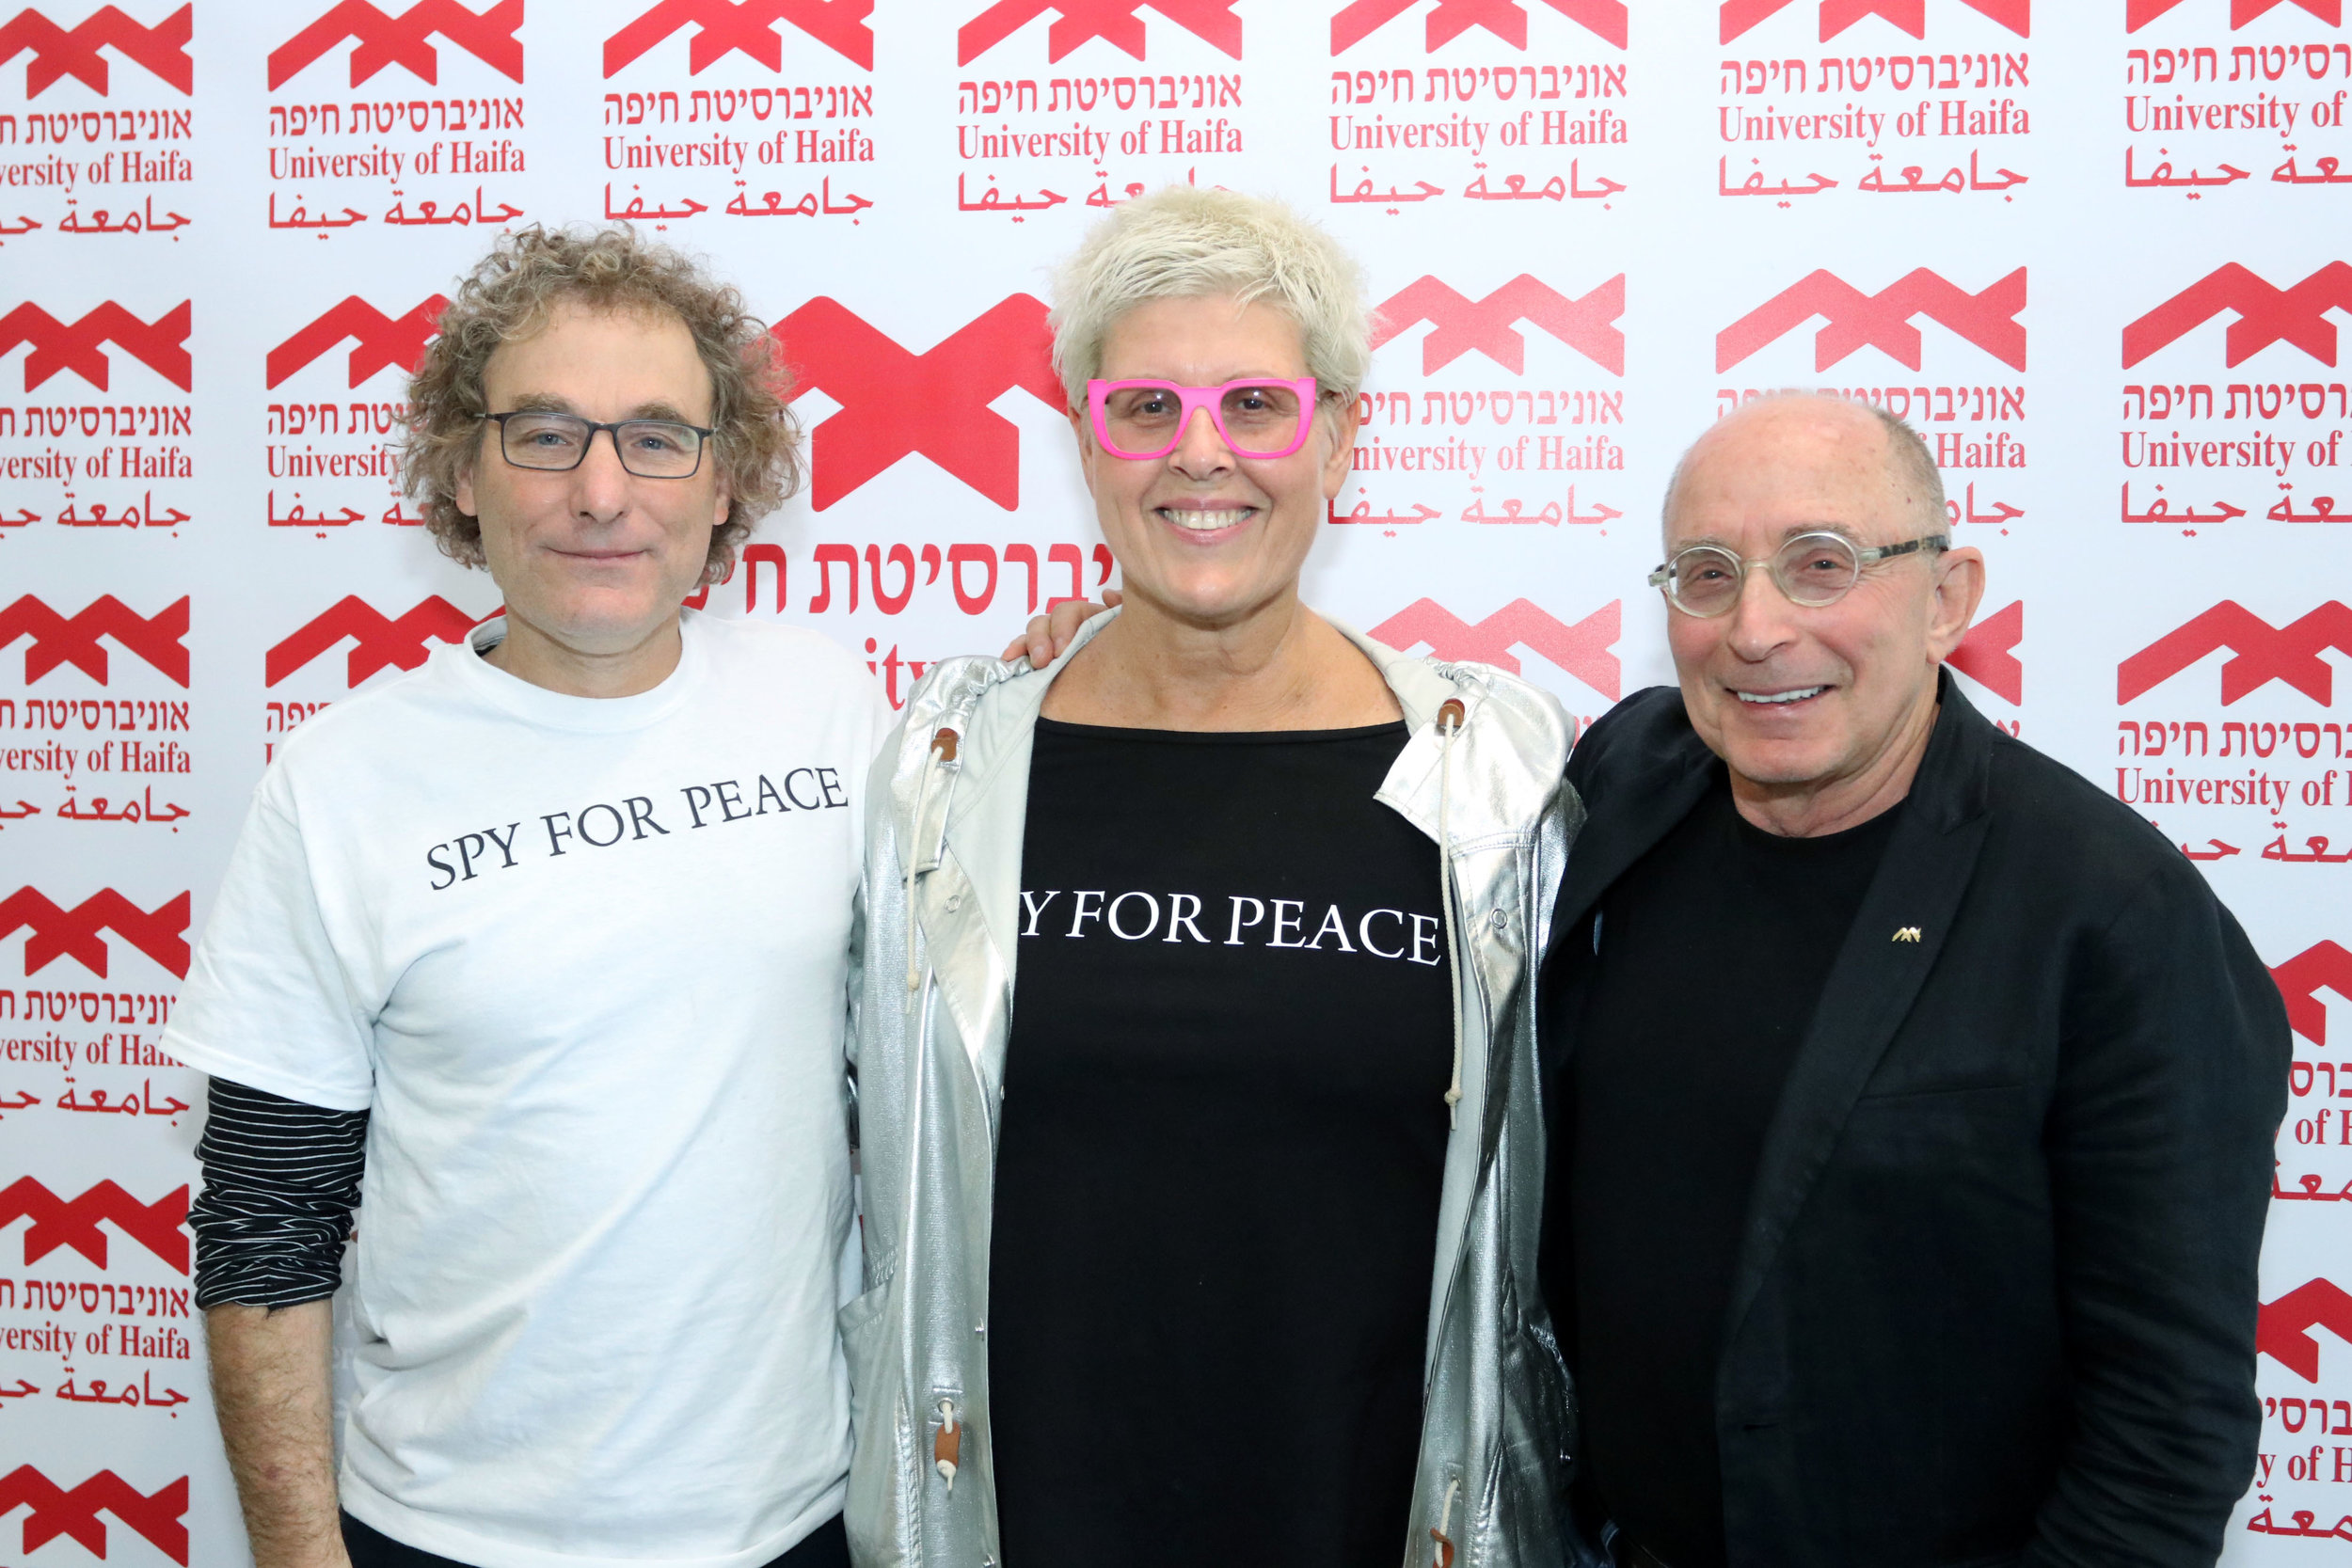 L-R: Sapir Handelman (Research & Simulation Leader), Tzili Charney (Center Founder) and Ron Robin, President of the University of Haifa.